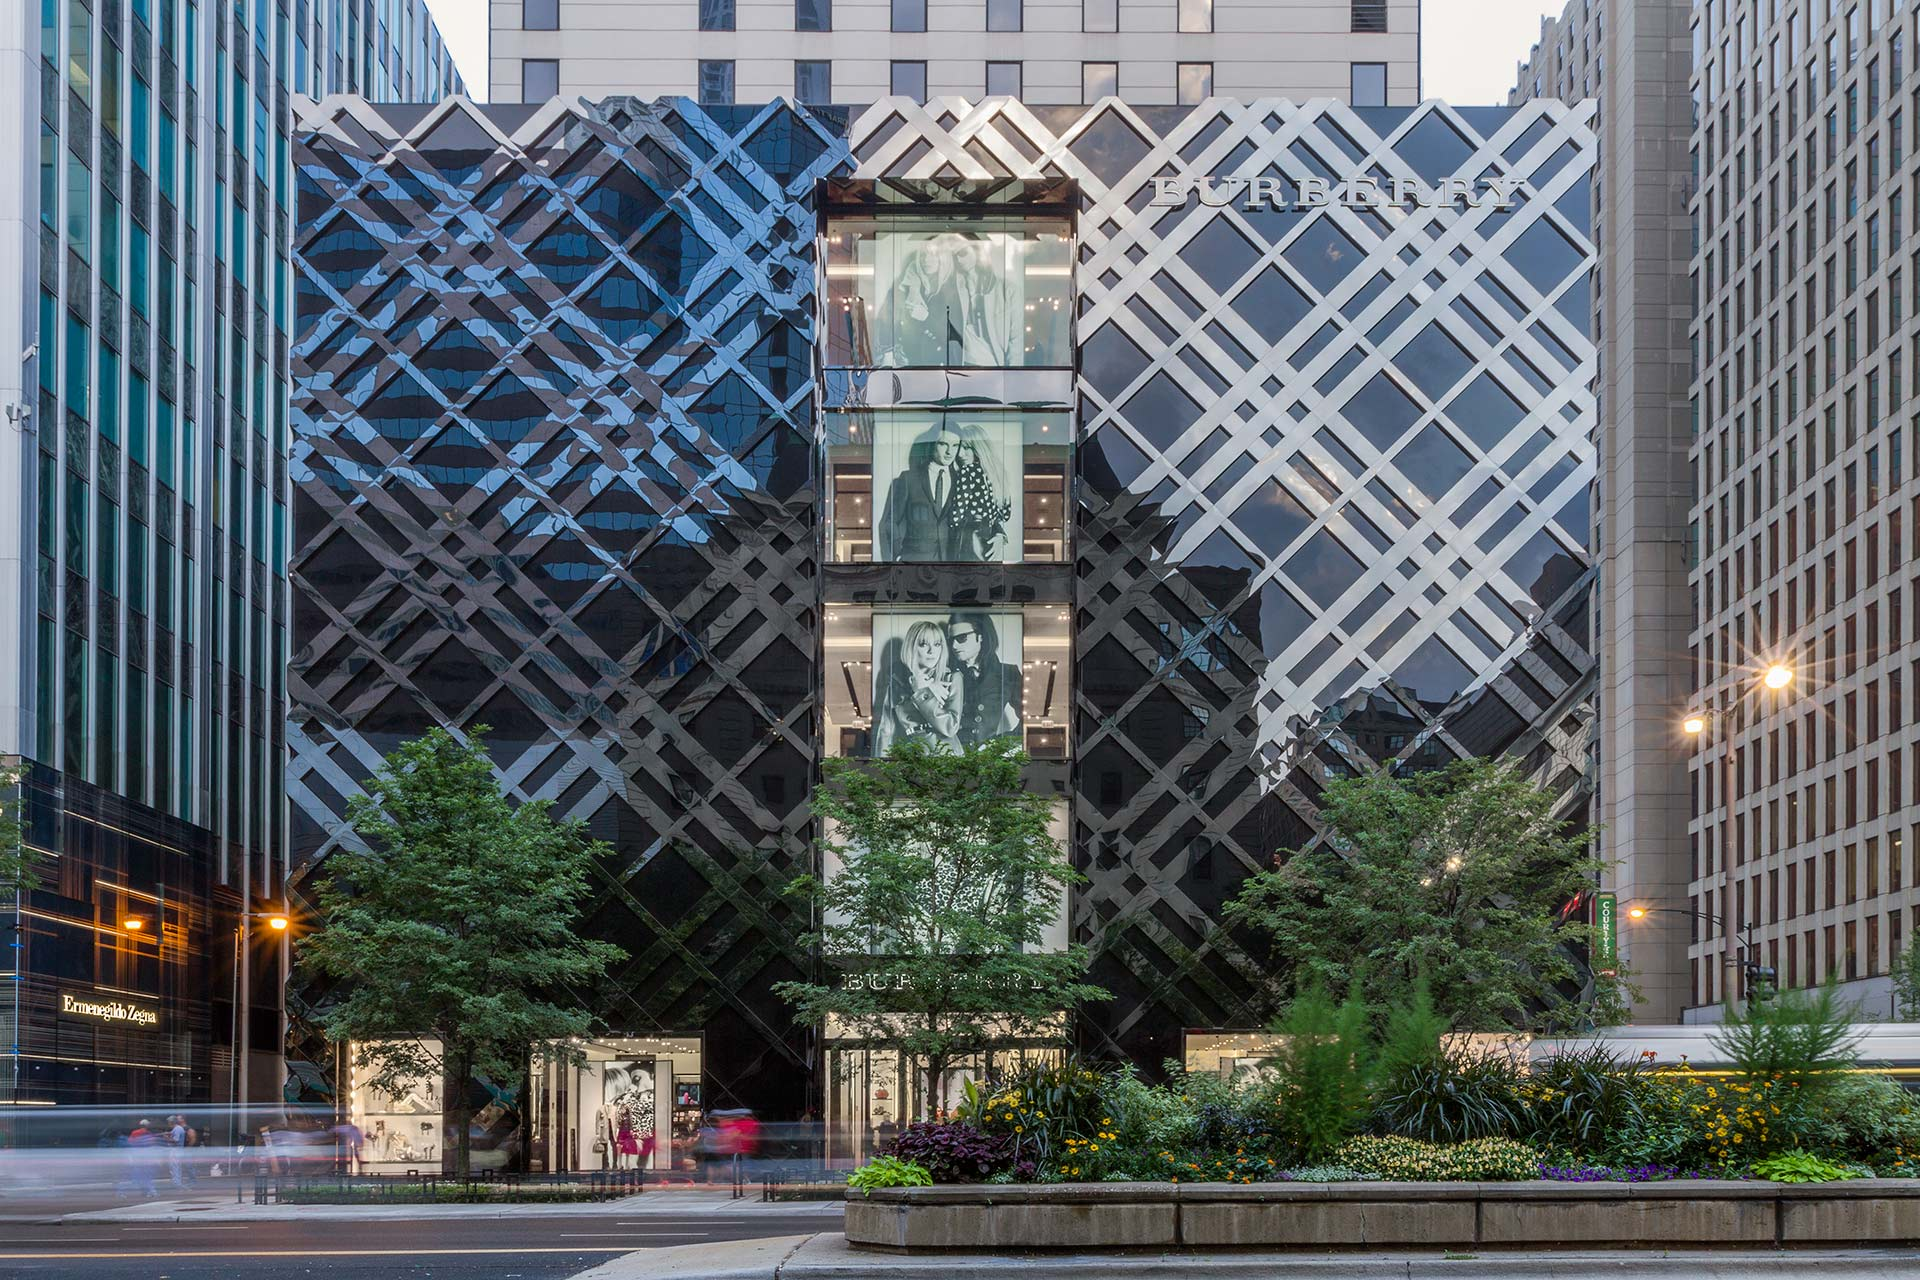 Zahner produced the complex facade for the new Burberry Flagship in Chicago, a deep-set fully developed facade integrated with exterior lighting systems.